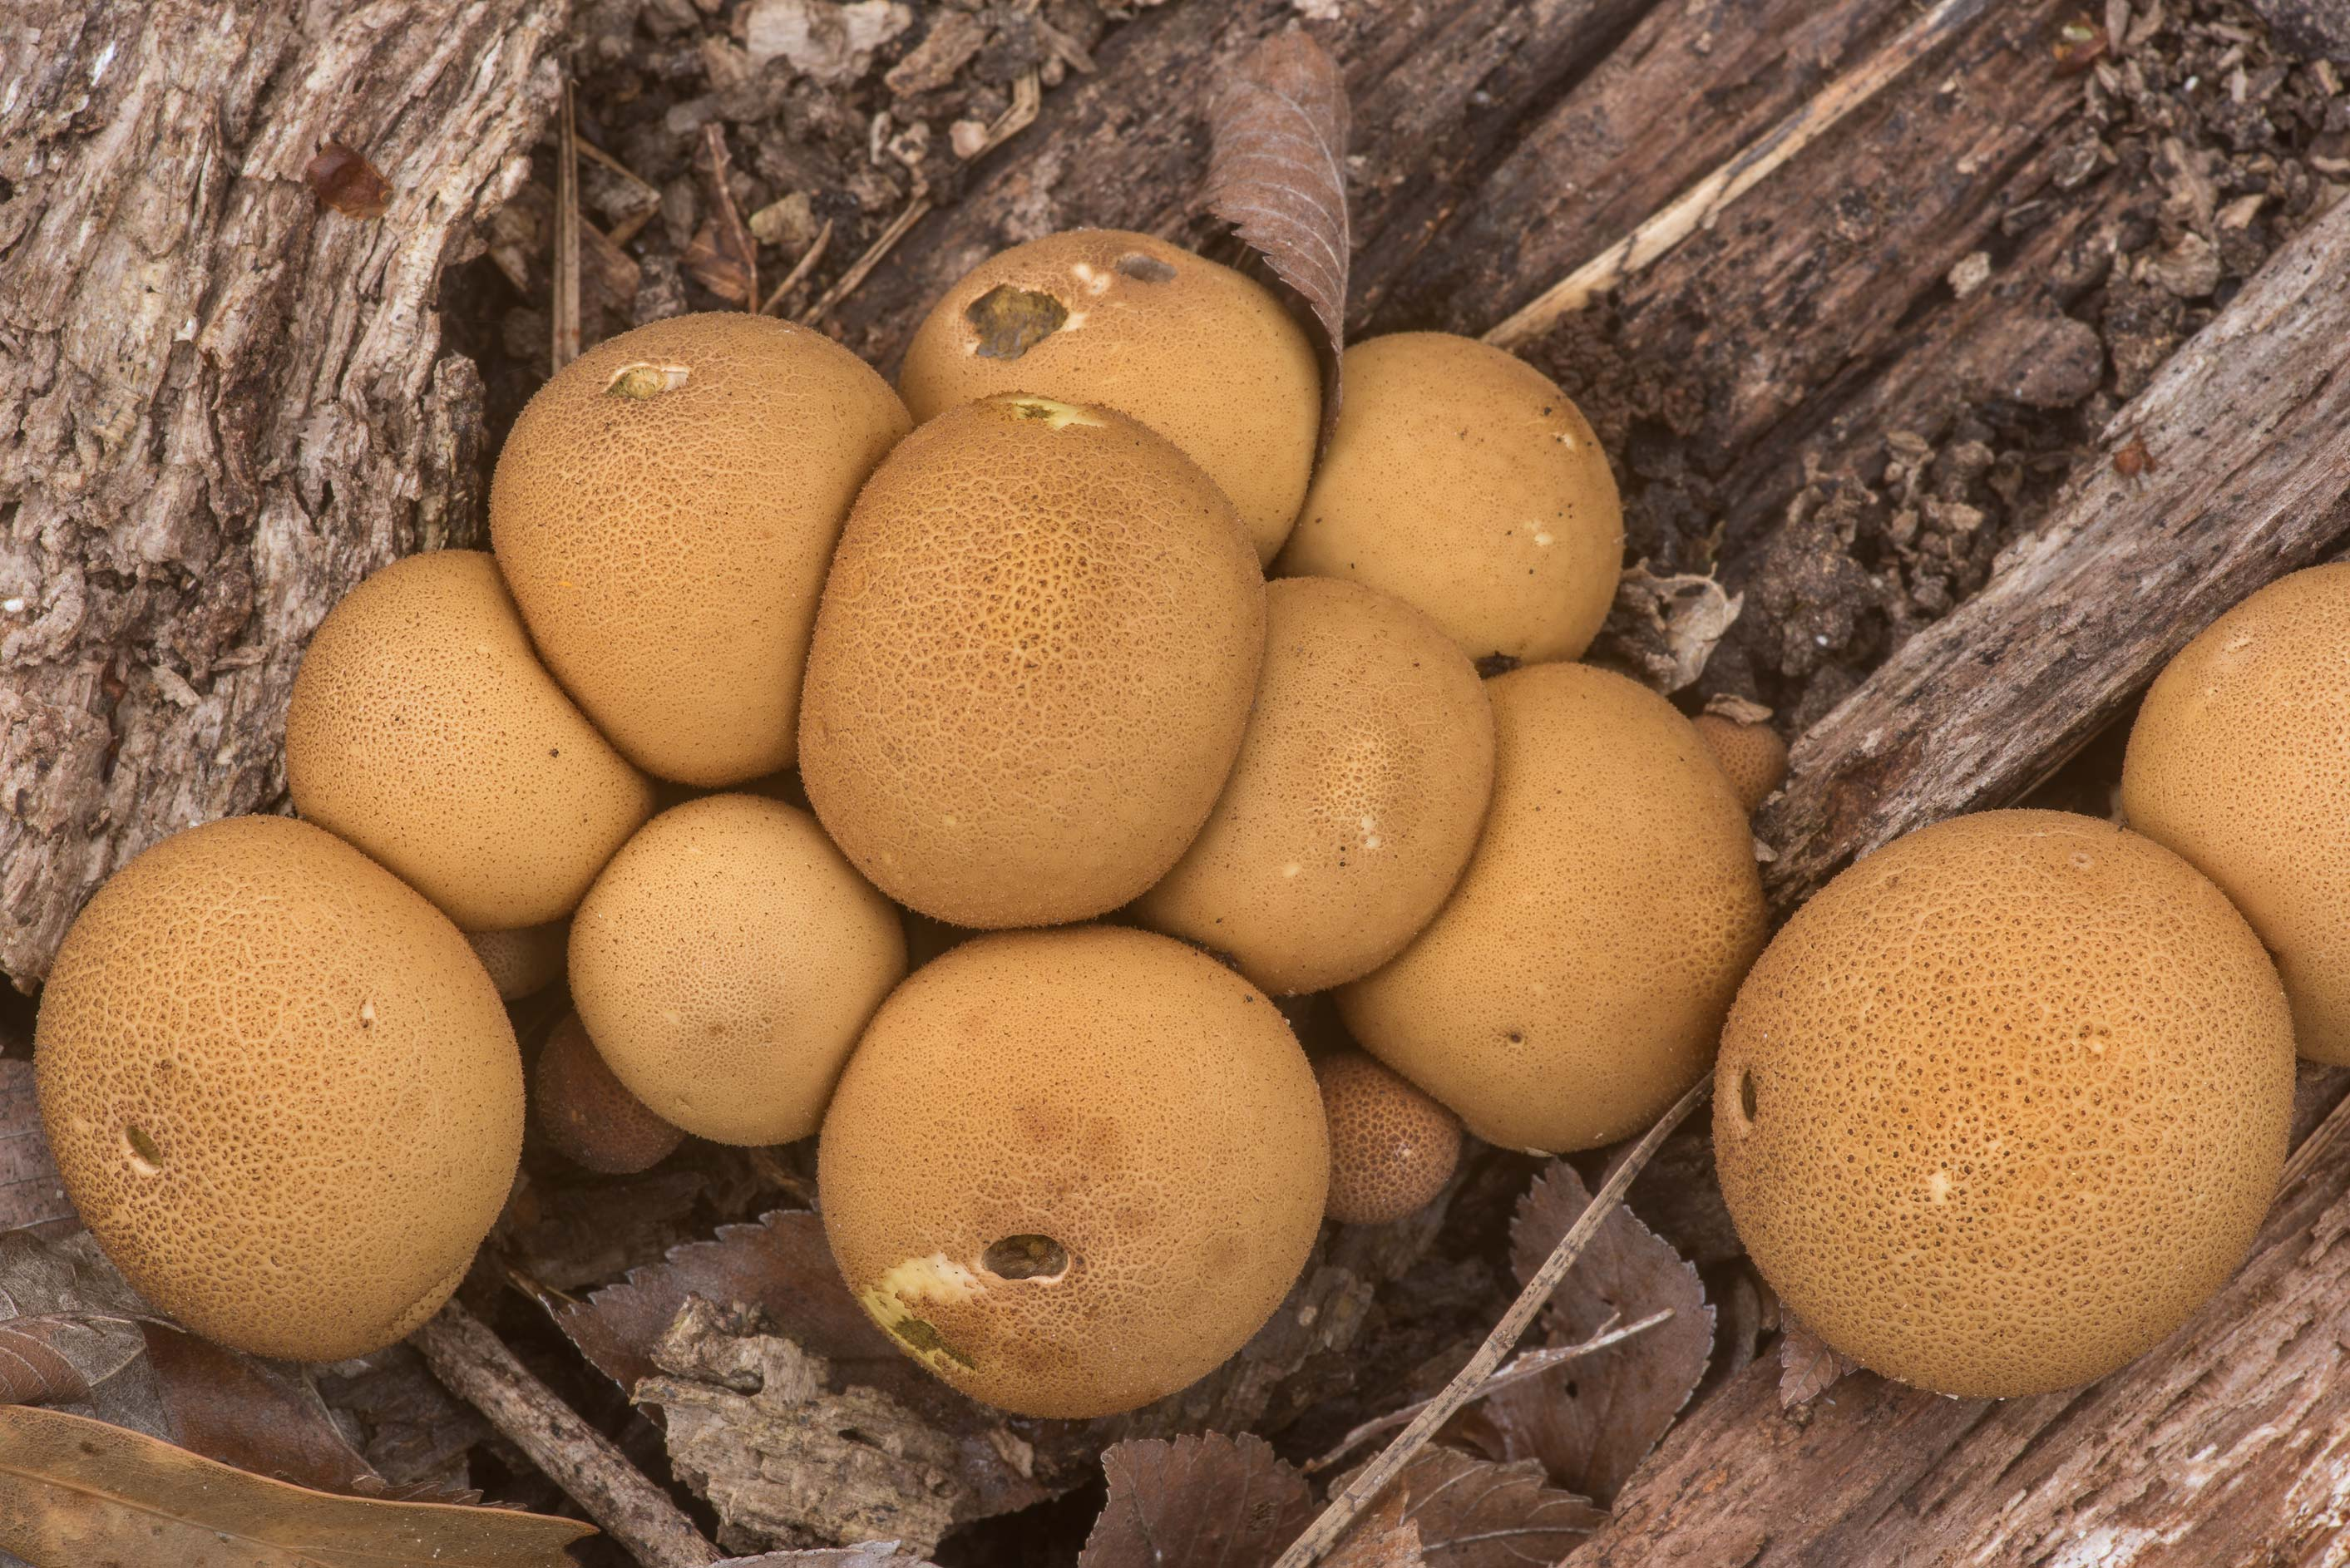 Pear-shaped stump puffball mushrooms (Lycoperdon...in Sam Houston National Forest. Texas